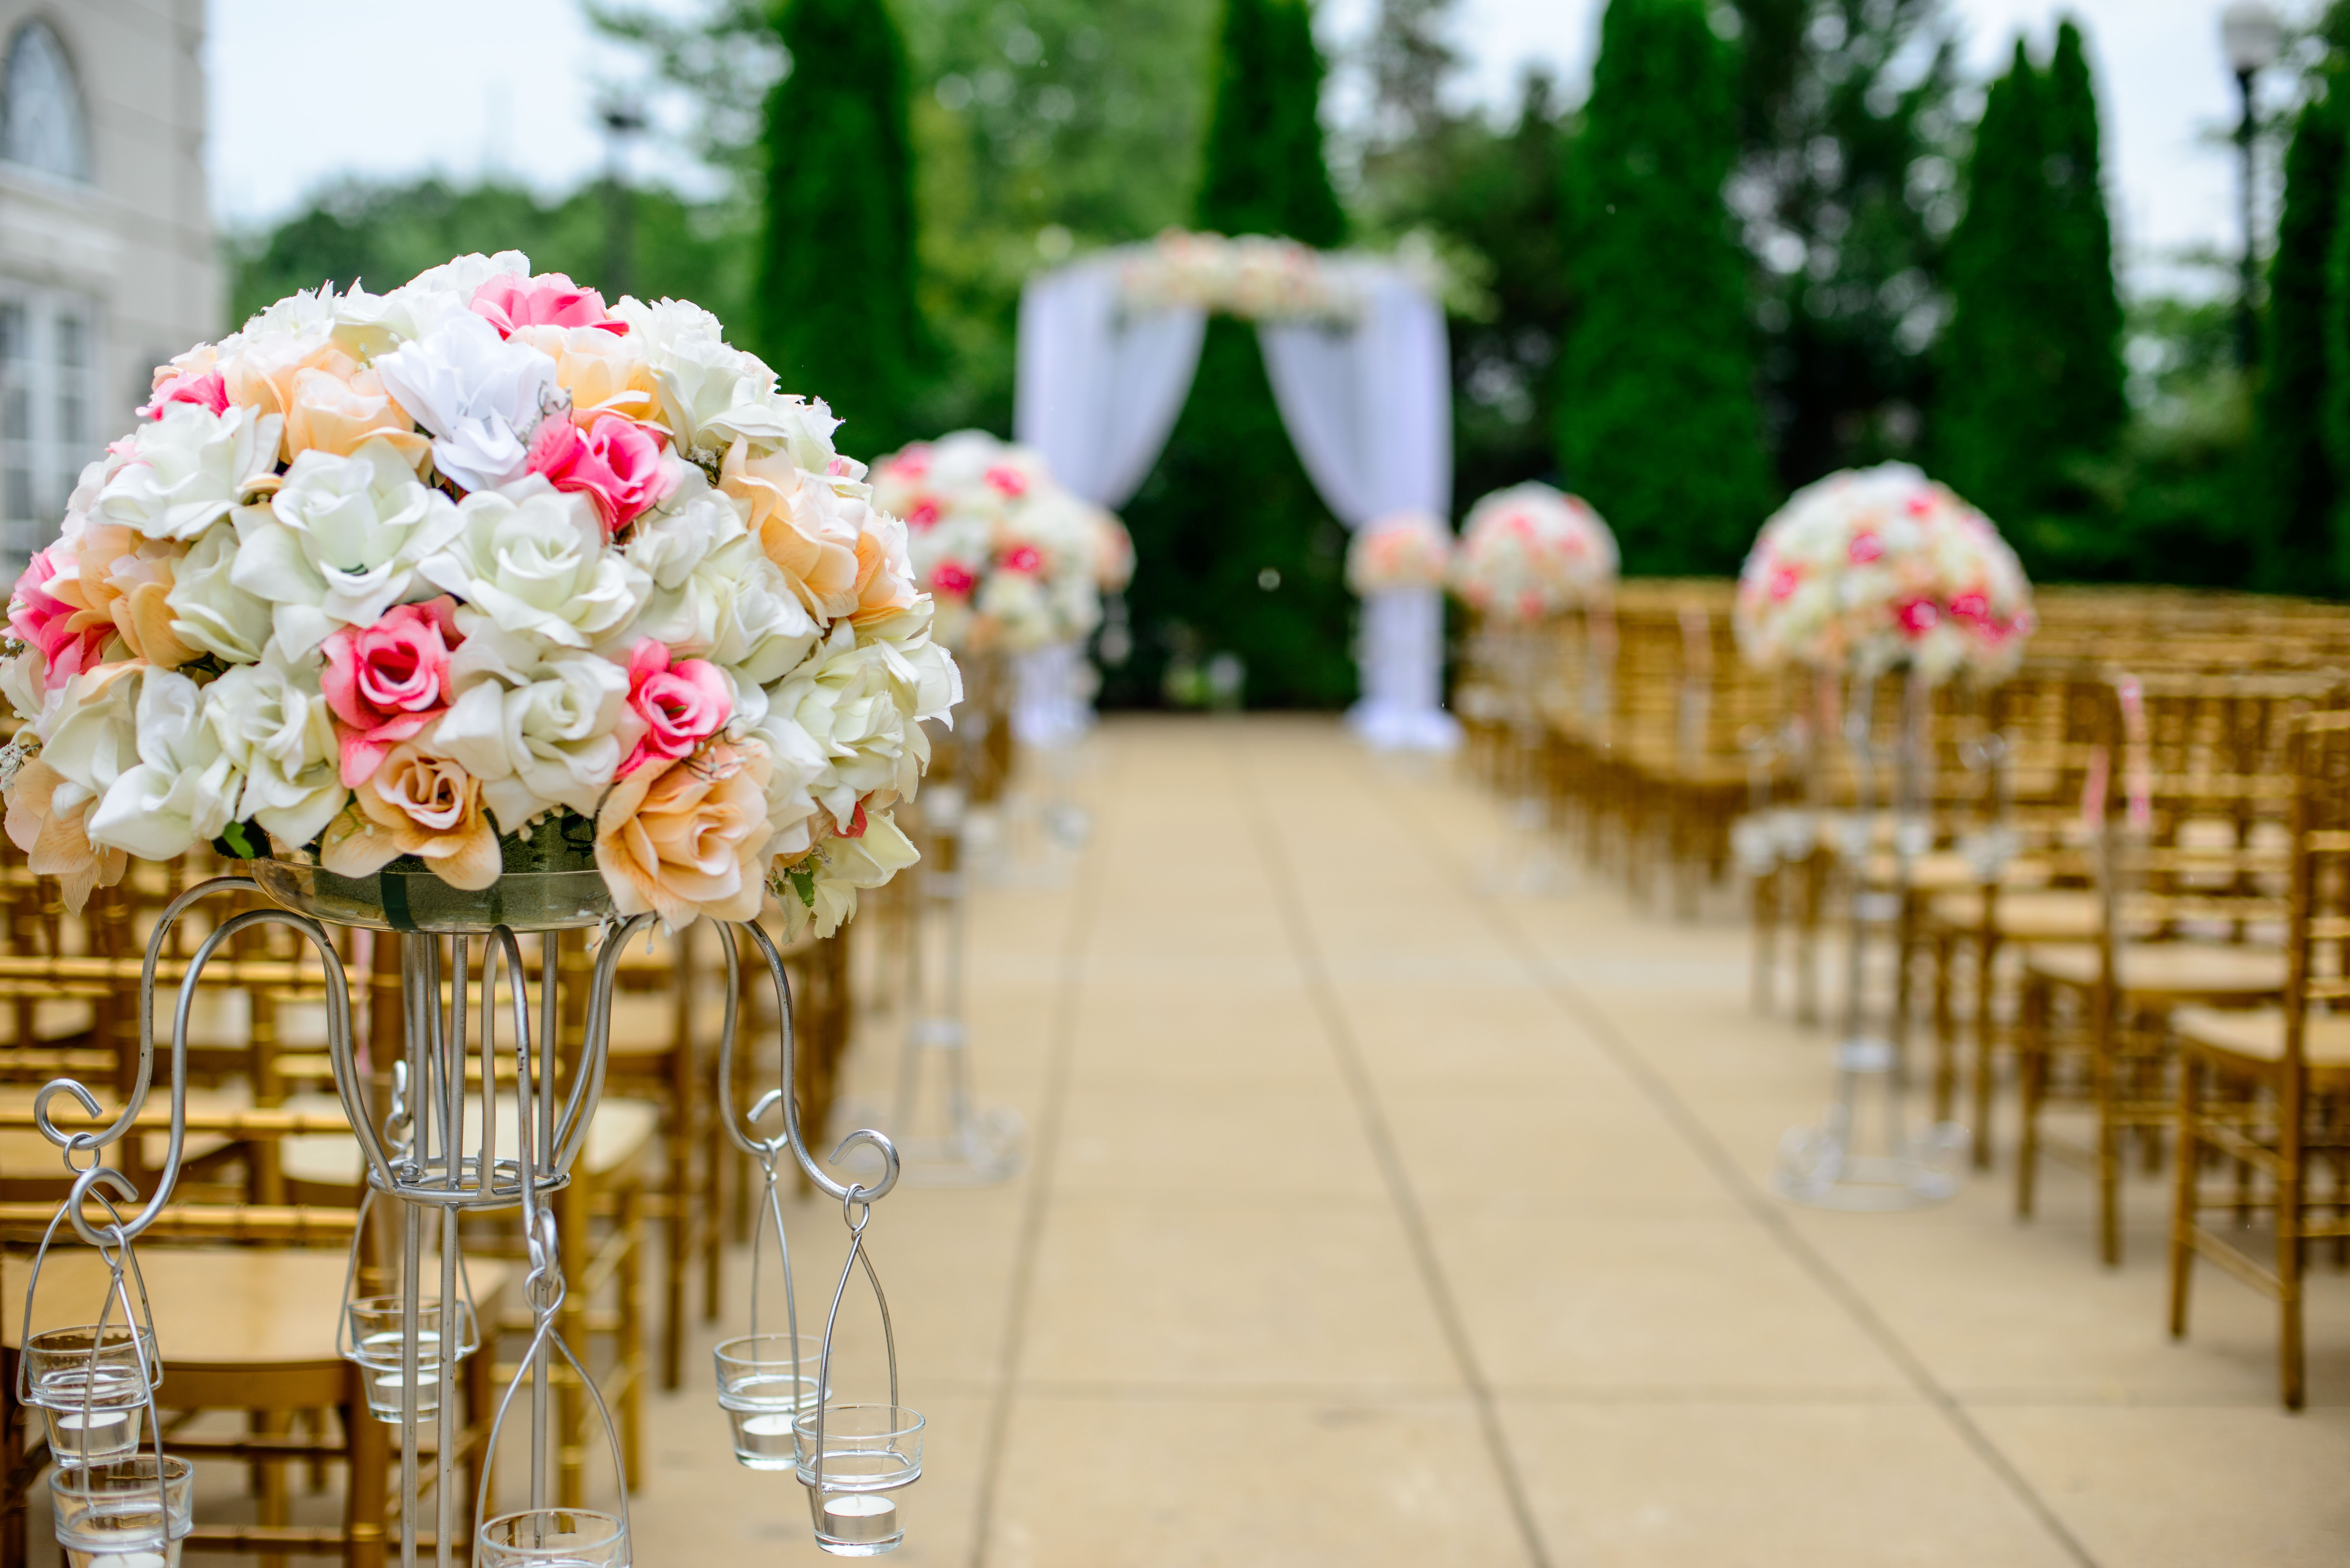 A scene prepared for a wedding with flower bouquets, empty chairs, and an altar